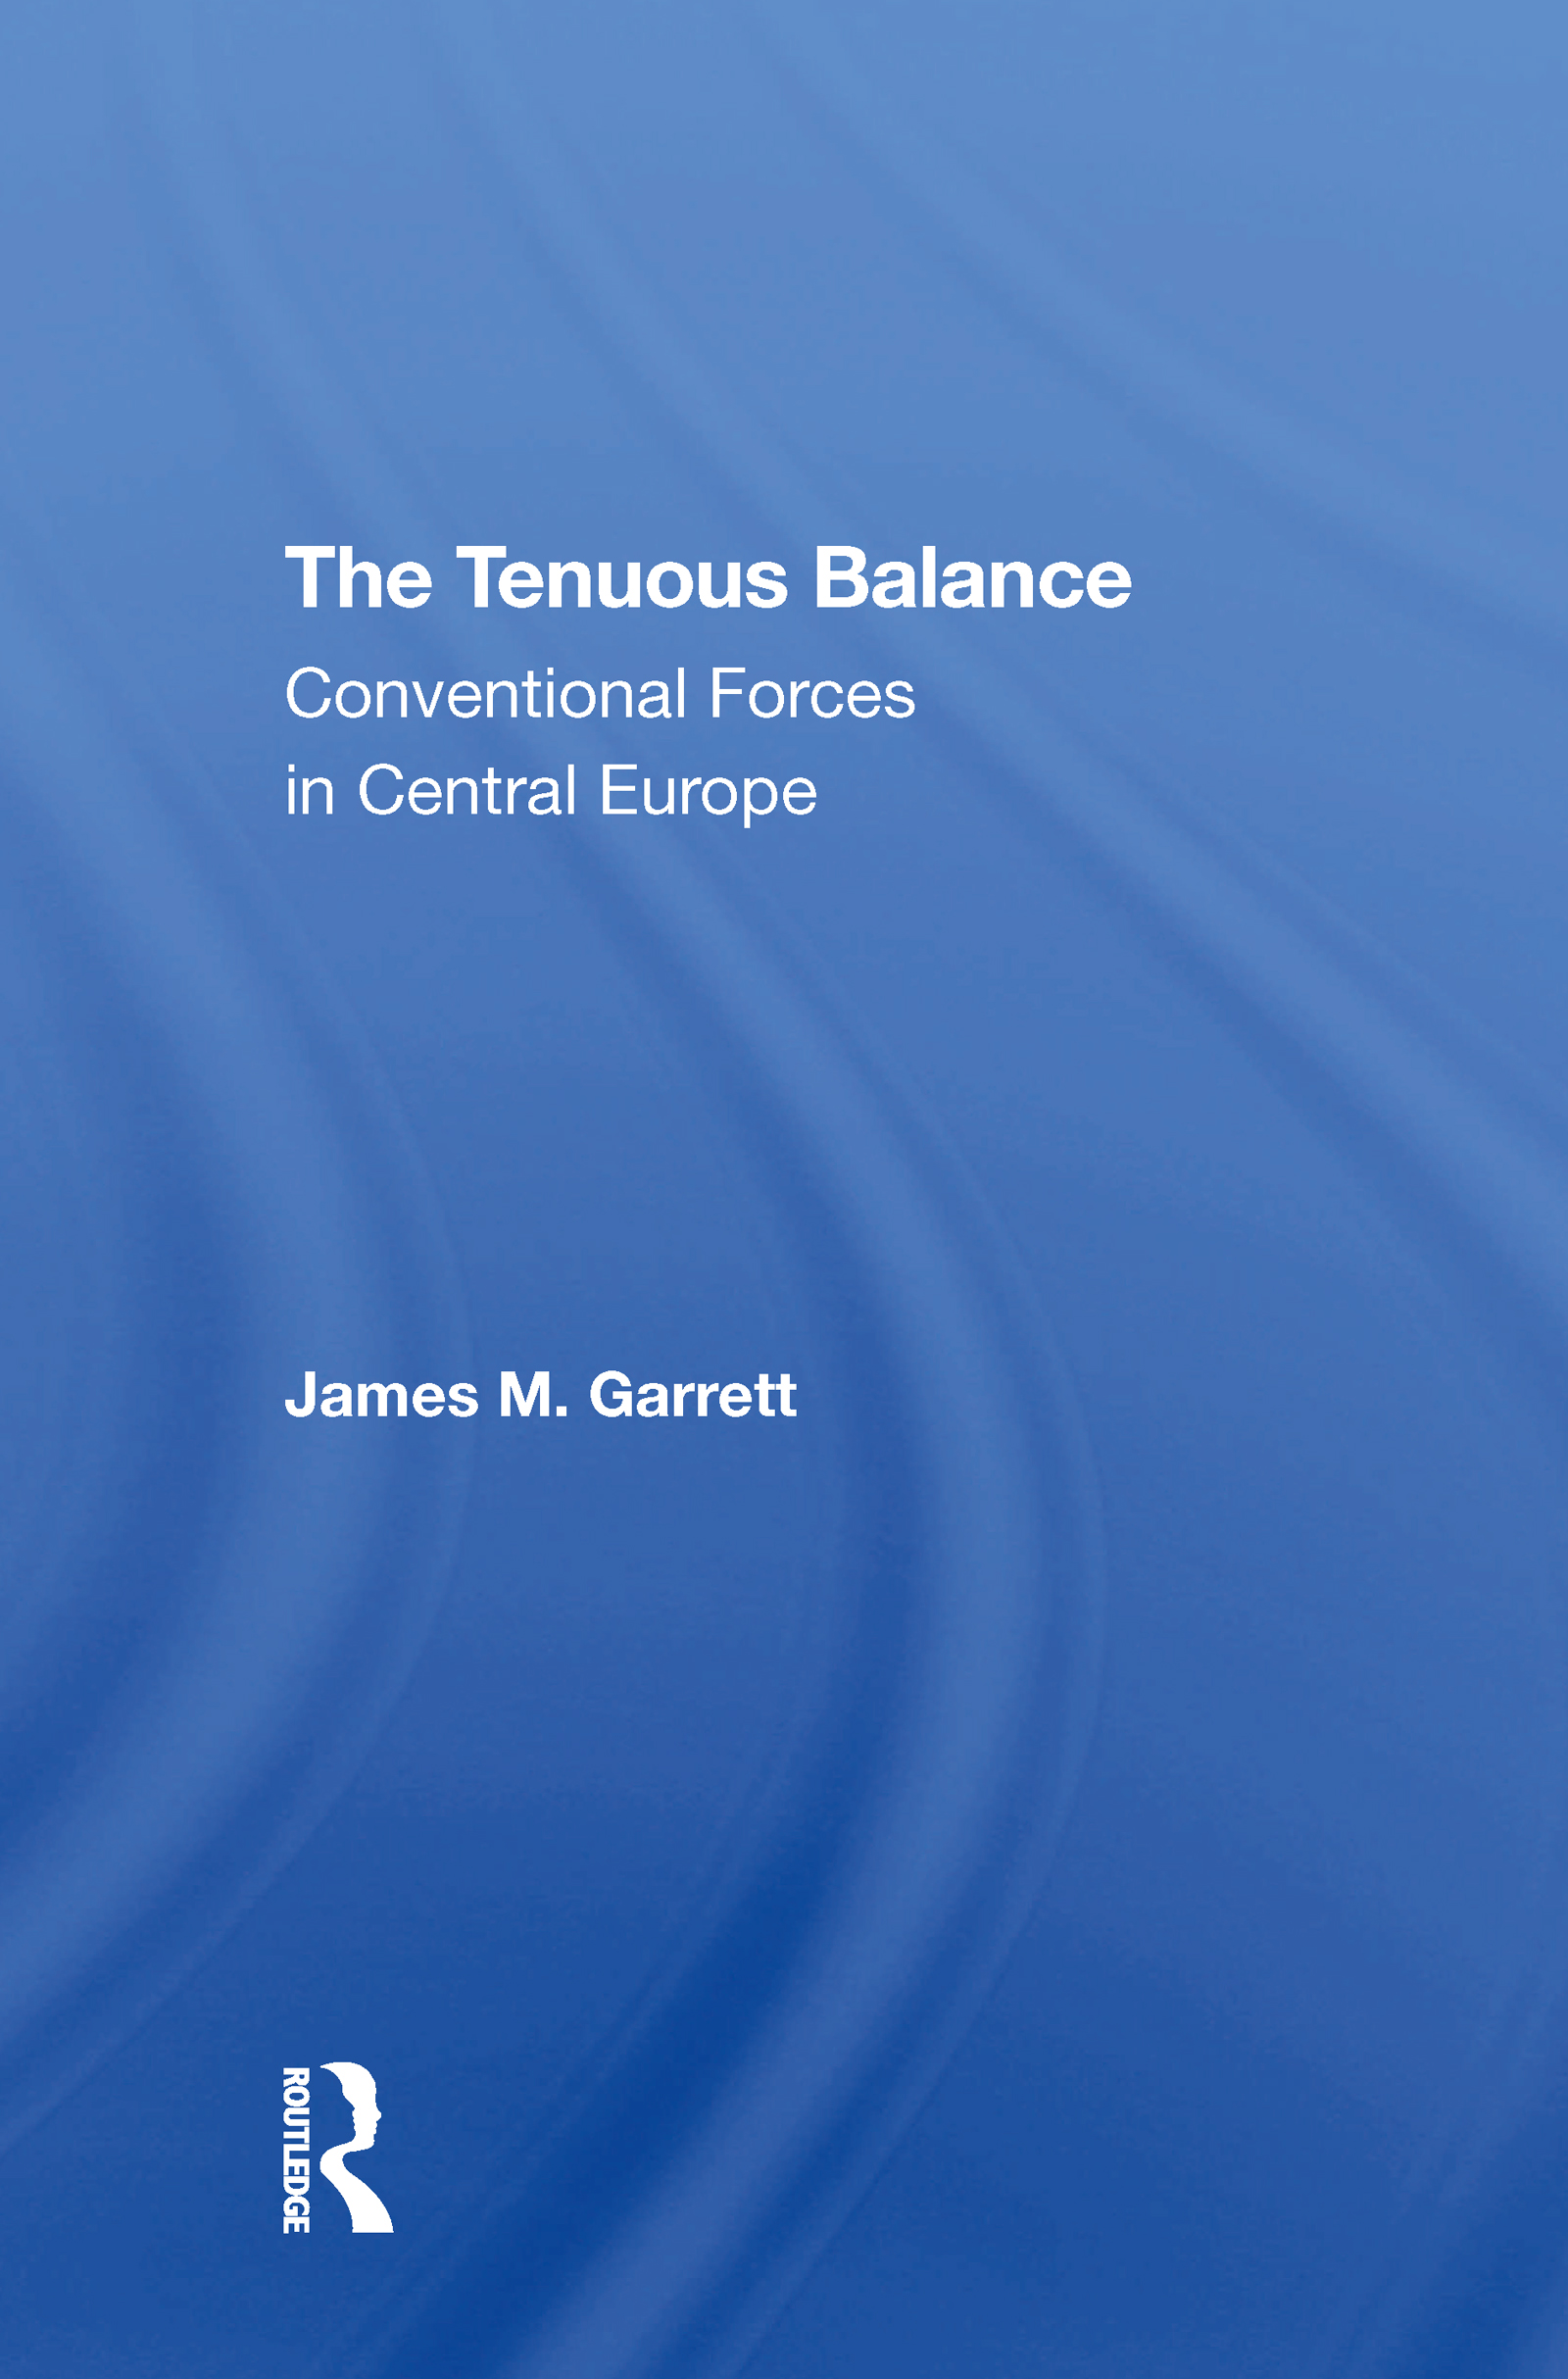 The Tenuous Balance